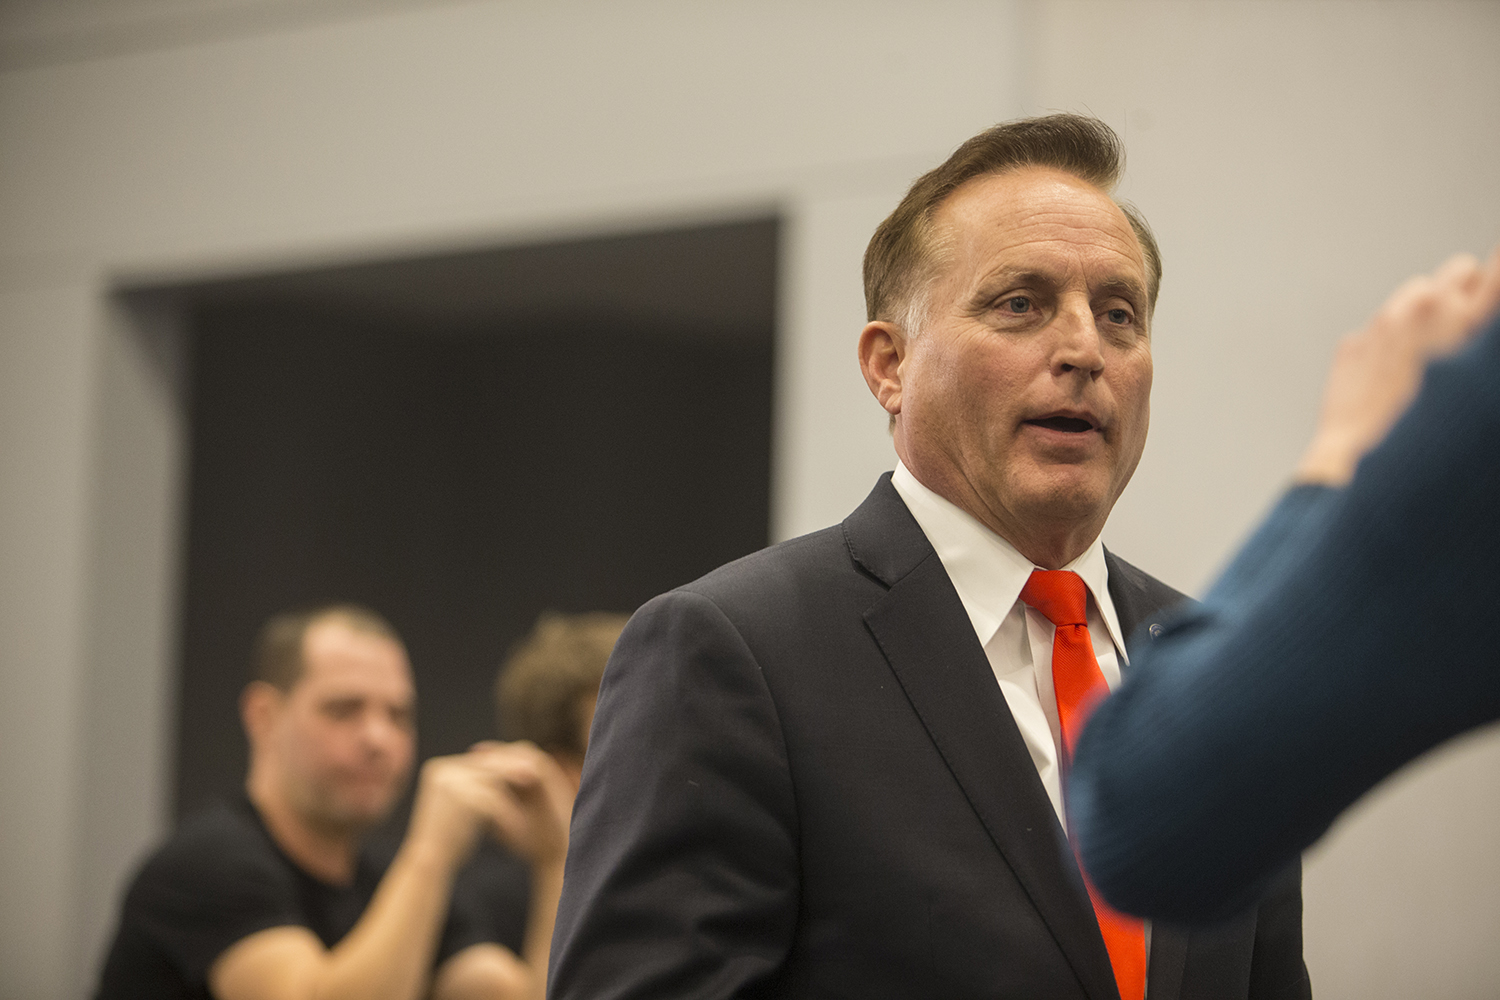 Secretary of State Paul Pate addresses members of the media at the Kim Reynolds watch party at the Hilton in Des Moines on Tuesday Nov. 6, 2018.